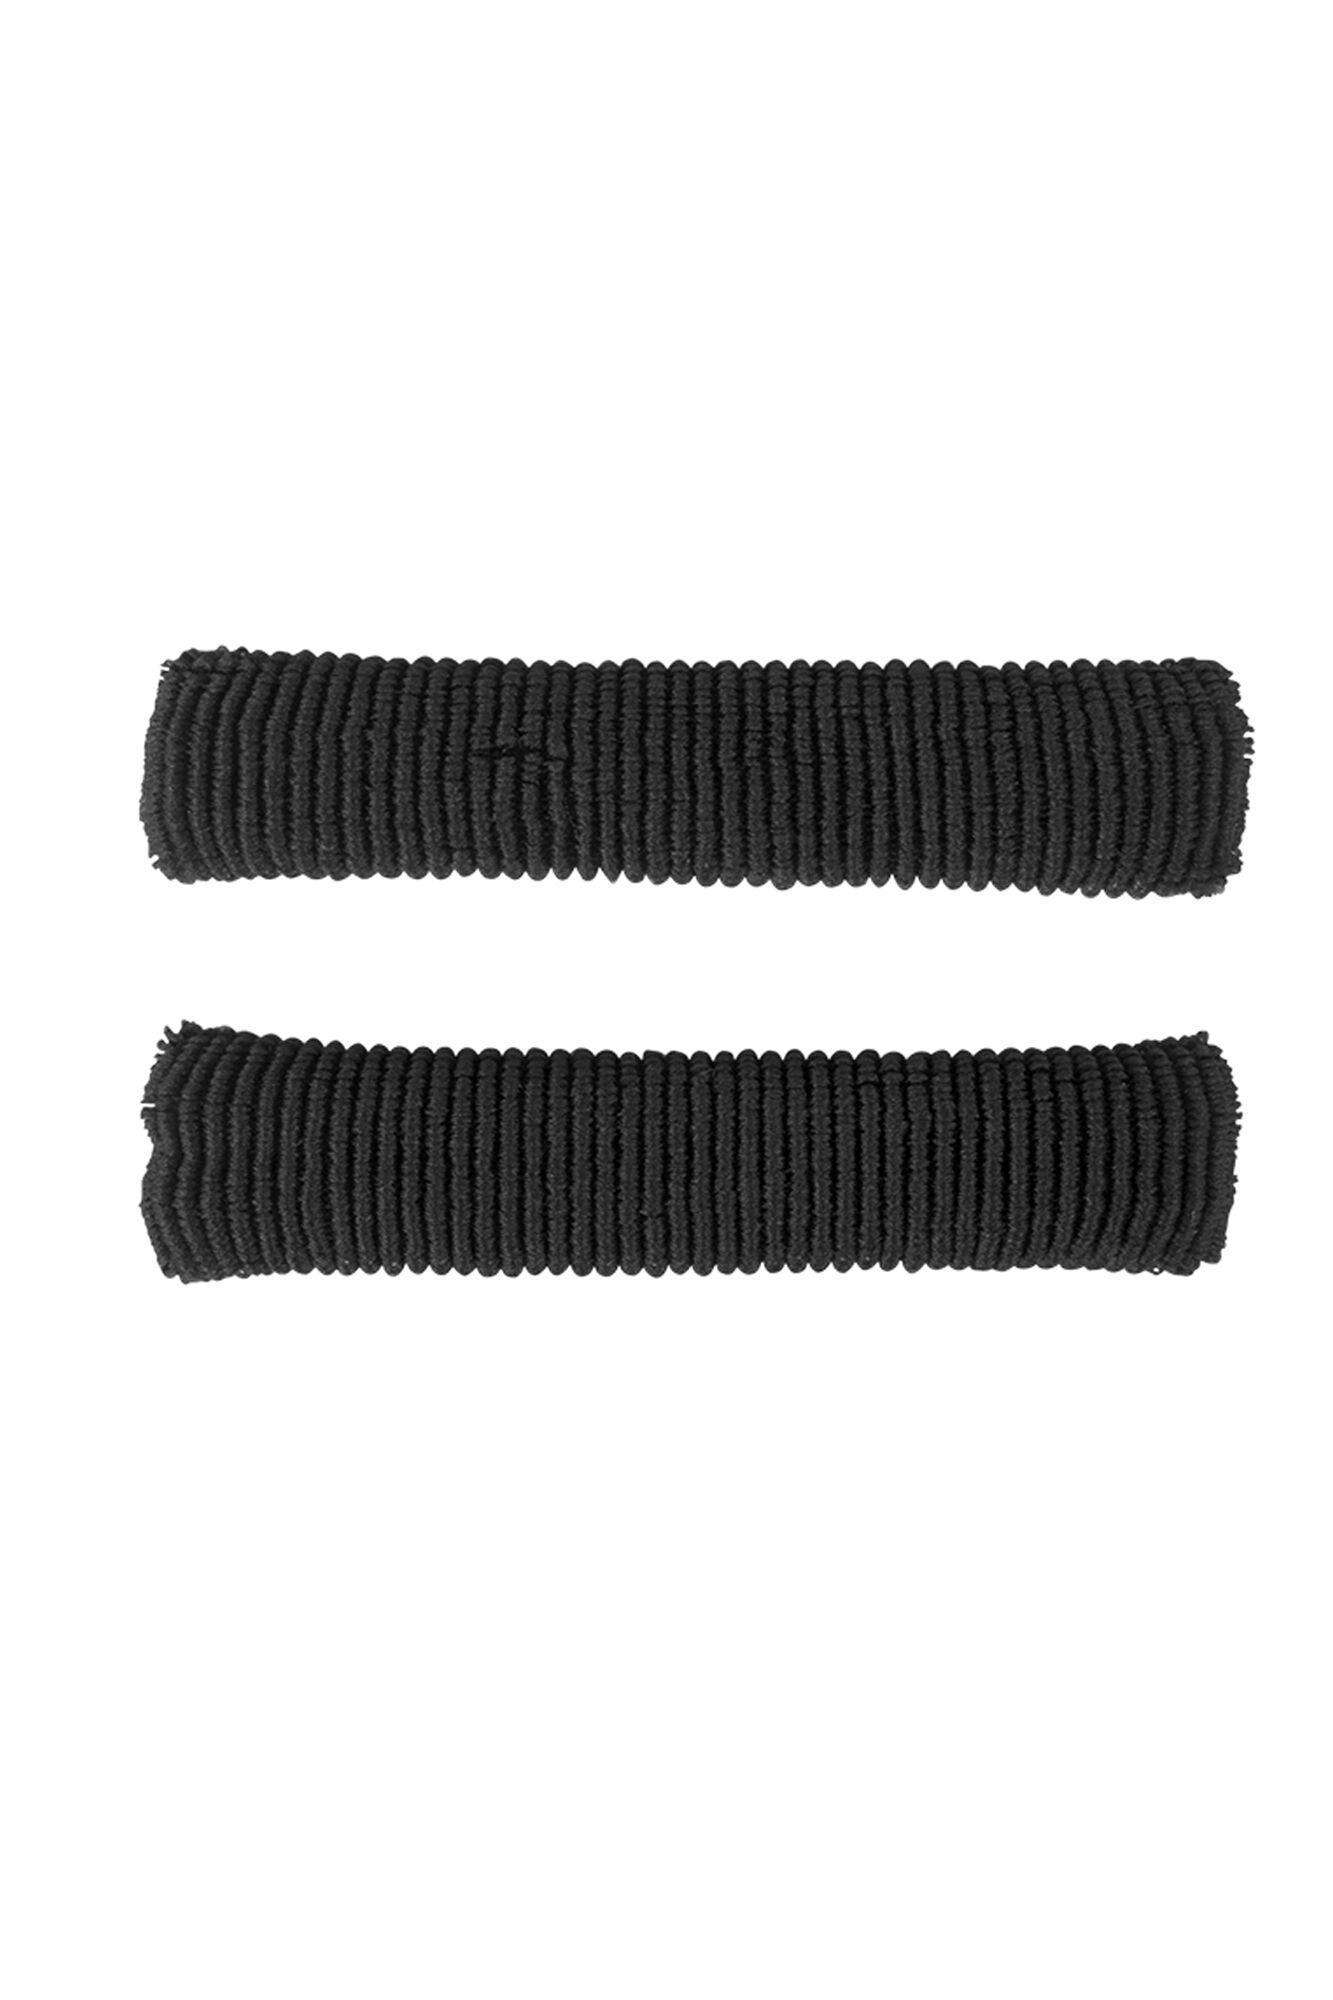 ENVII 2 PACK ELASTIC BAND, BLACK